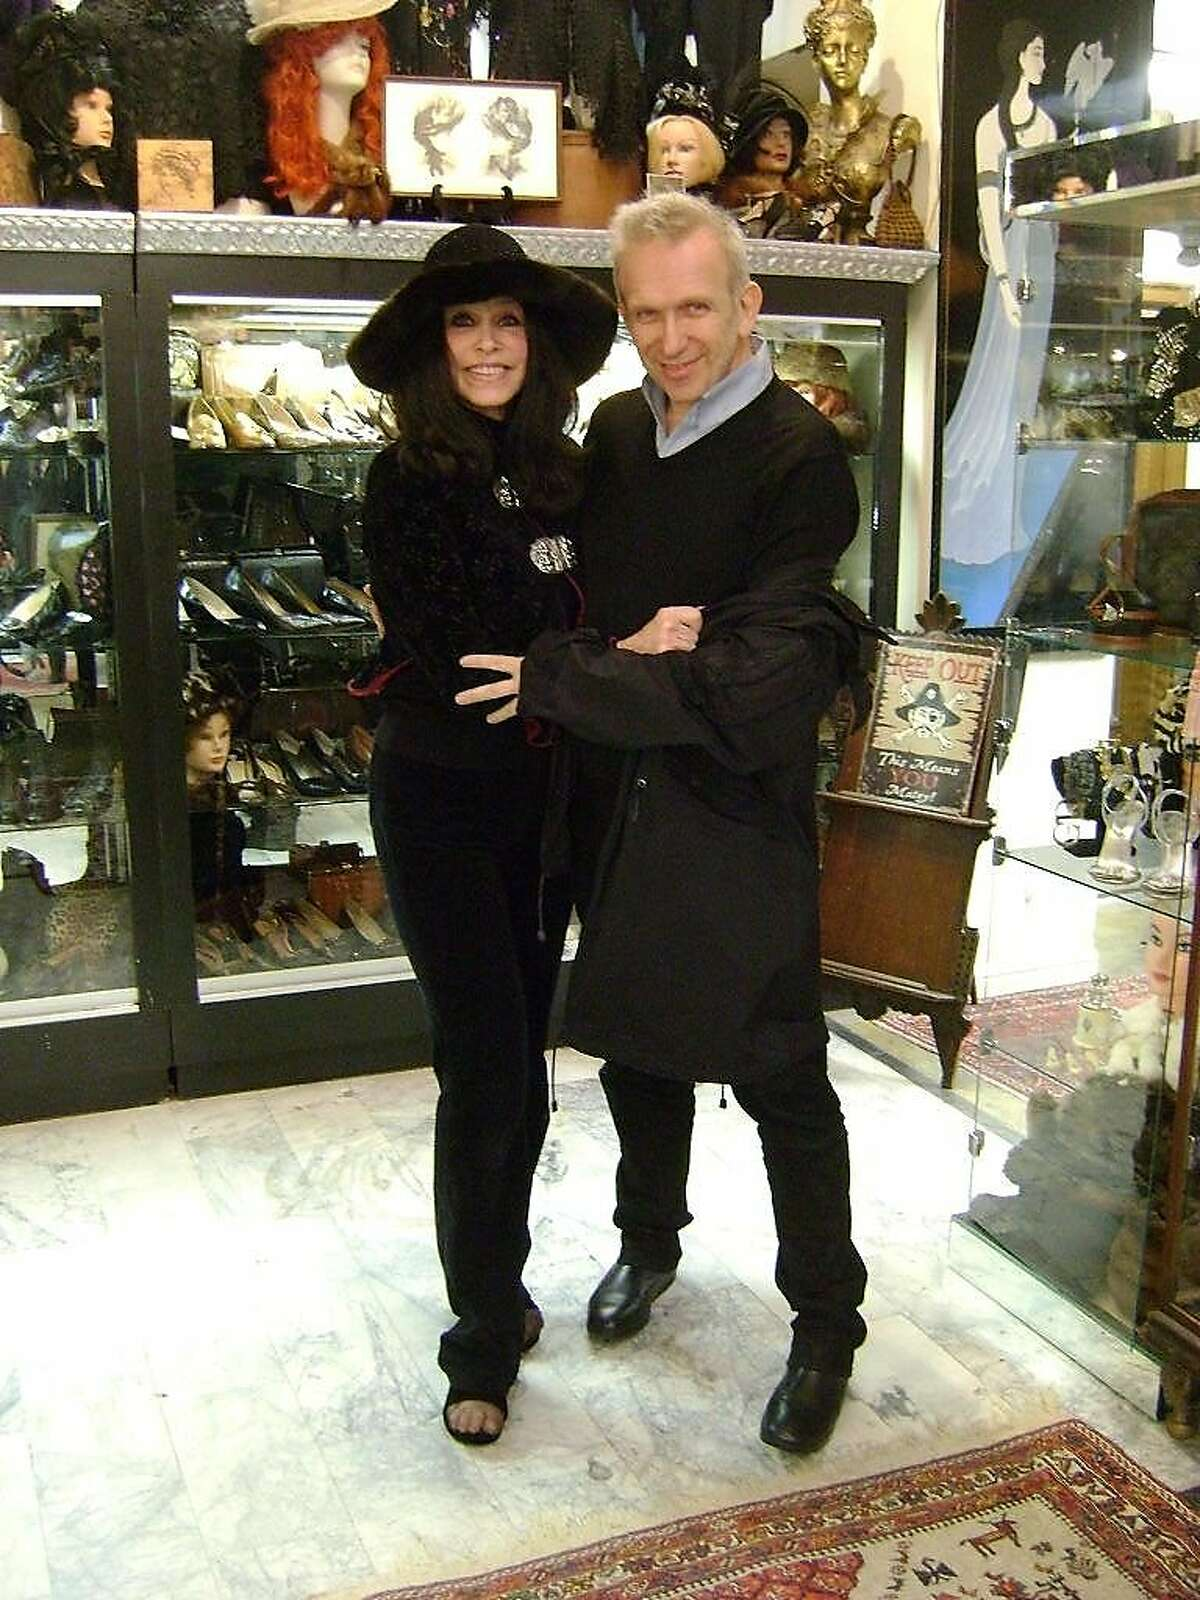 Decades of Fashion owner Cicely Hansen with fashion designer Jean Paul Gaultier at her store on Haight Street.